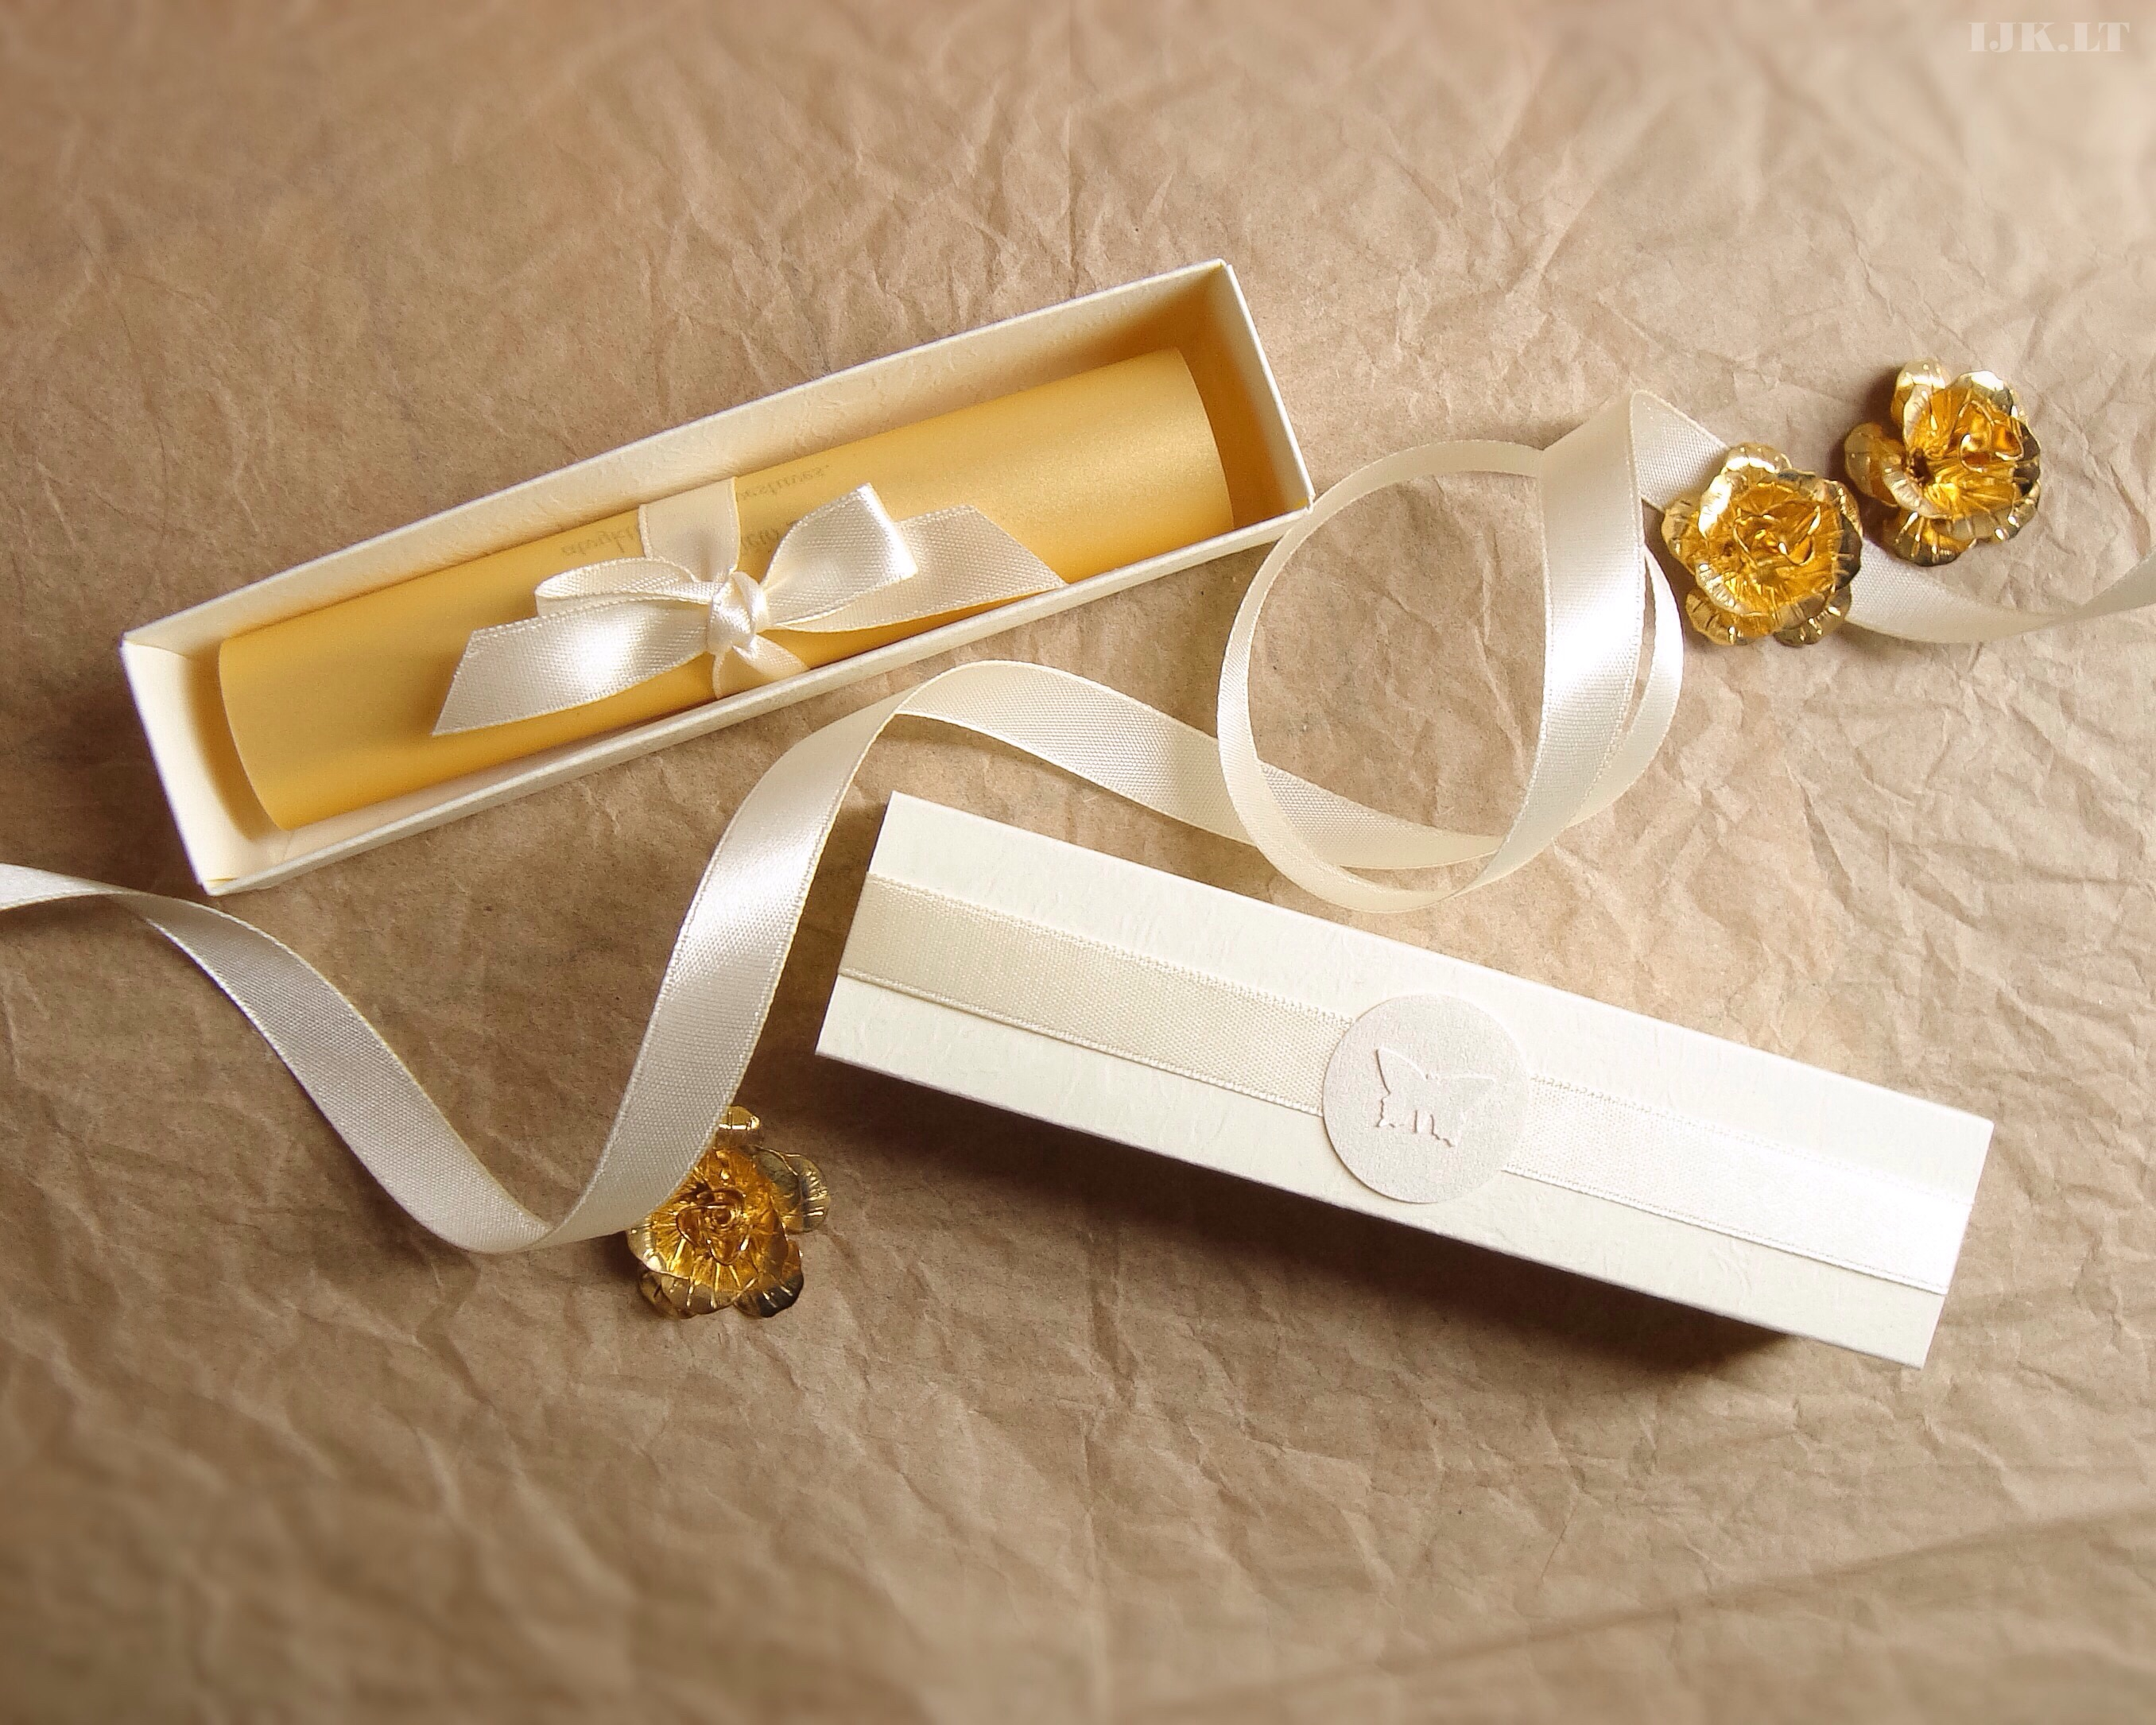 Wedding invitation, box, ivoryo, gold, butterfly, scrolled